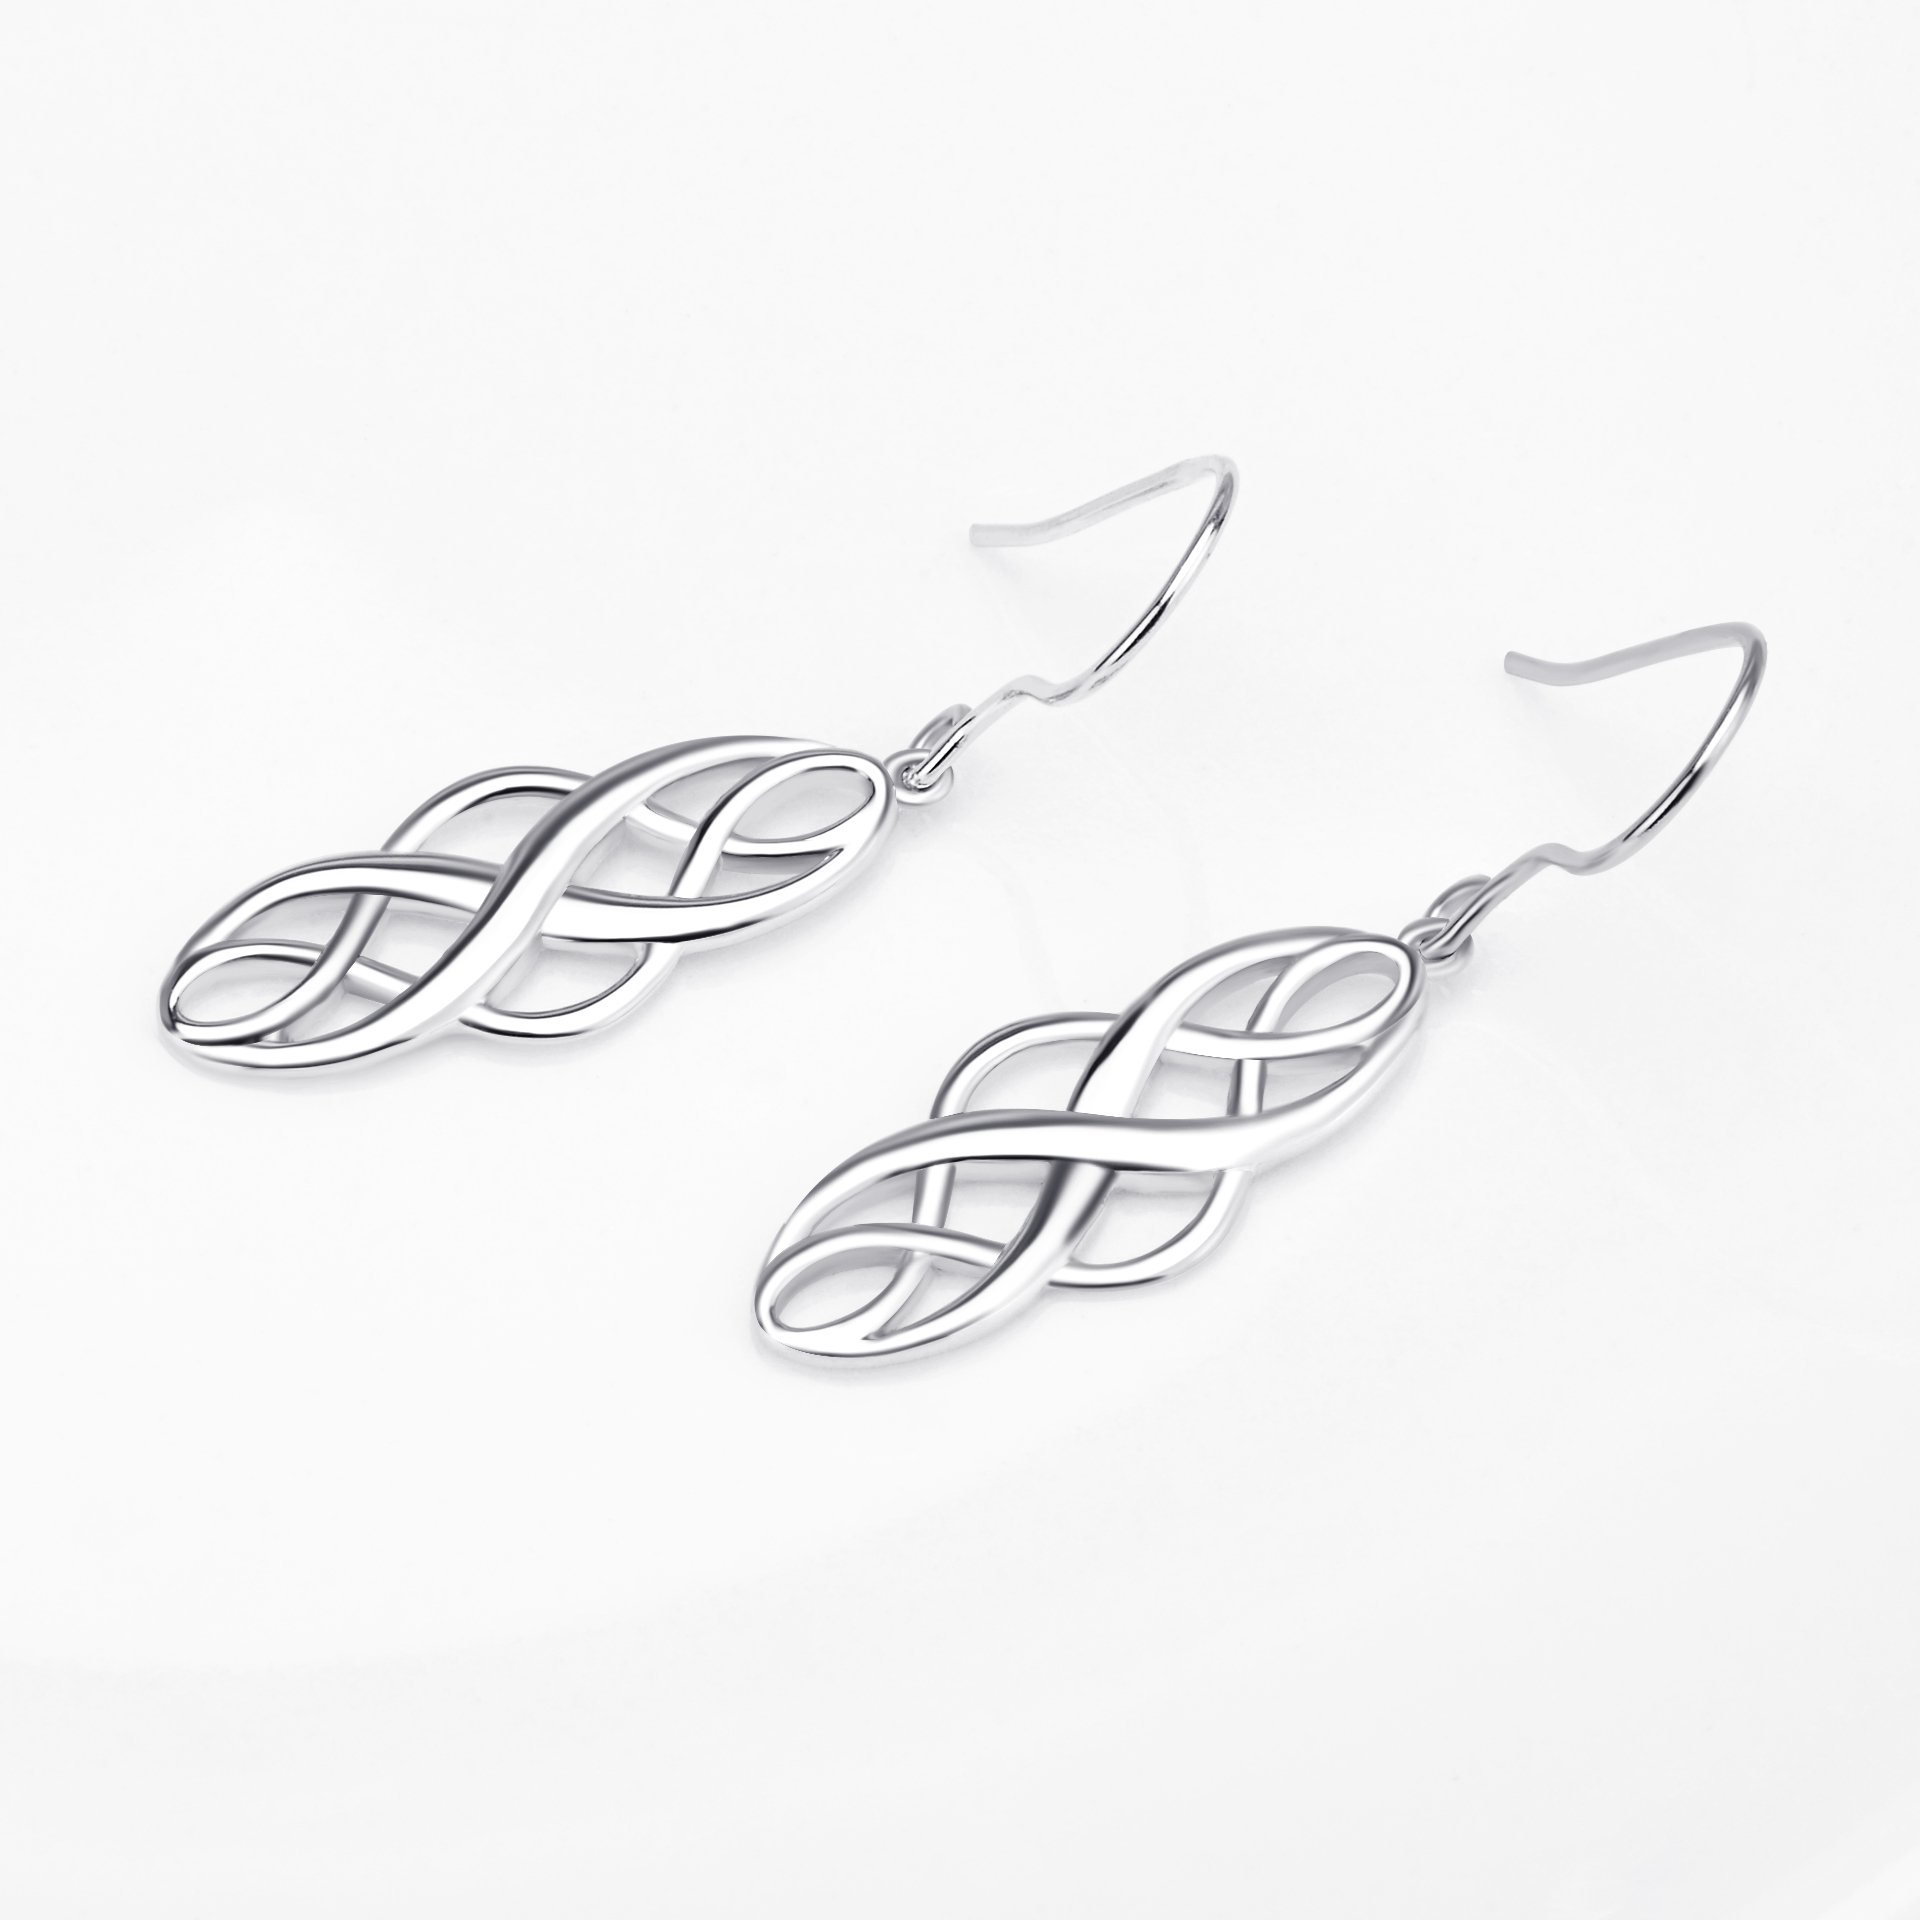 S925 Silver Earrings Solid Sterling Silver Polished Good Luck Irish Celtic Knot Vintage Dangles (Platinum) by Angel caller (Image #4)